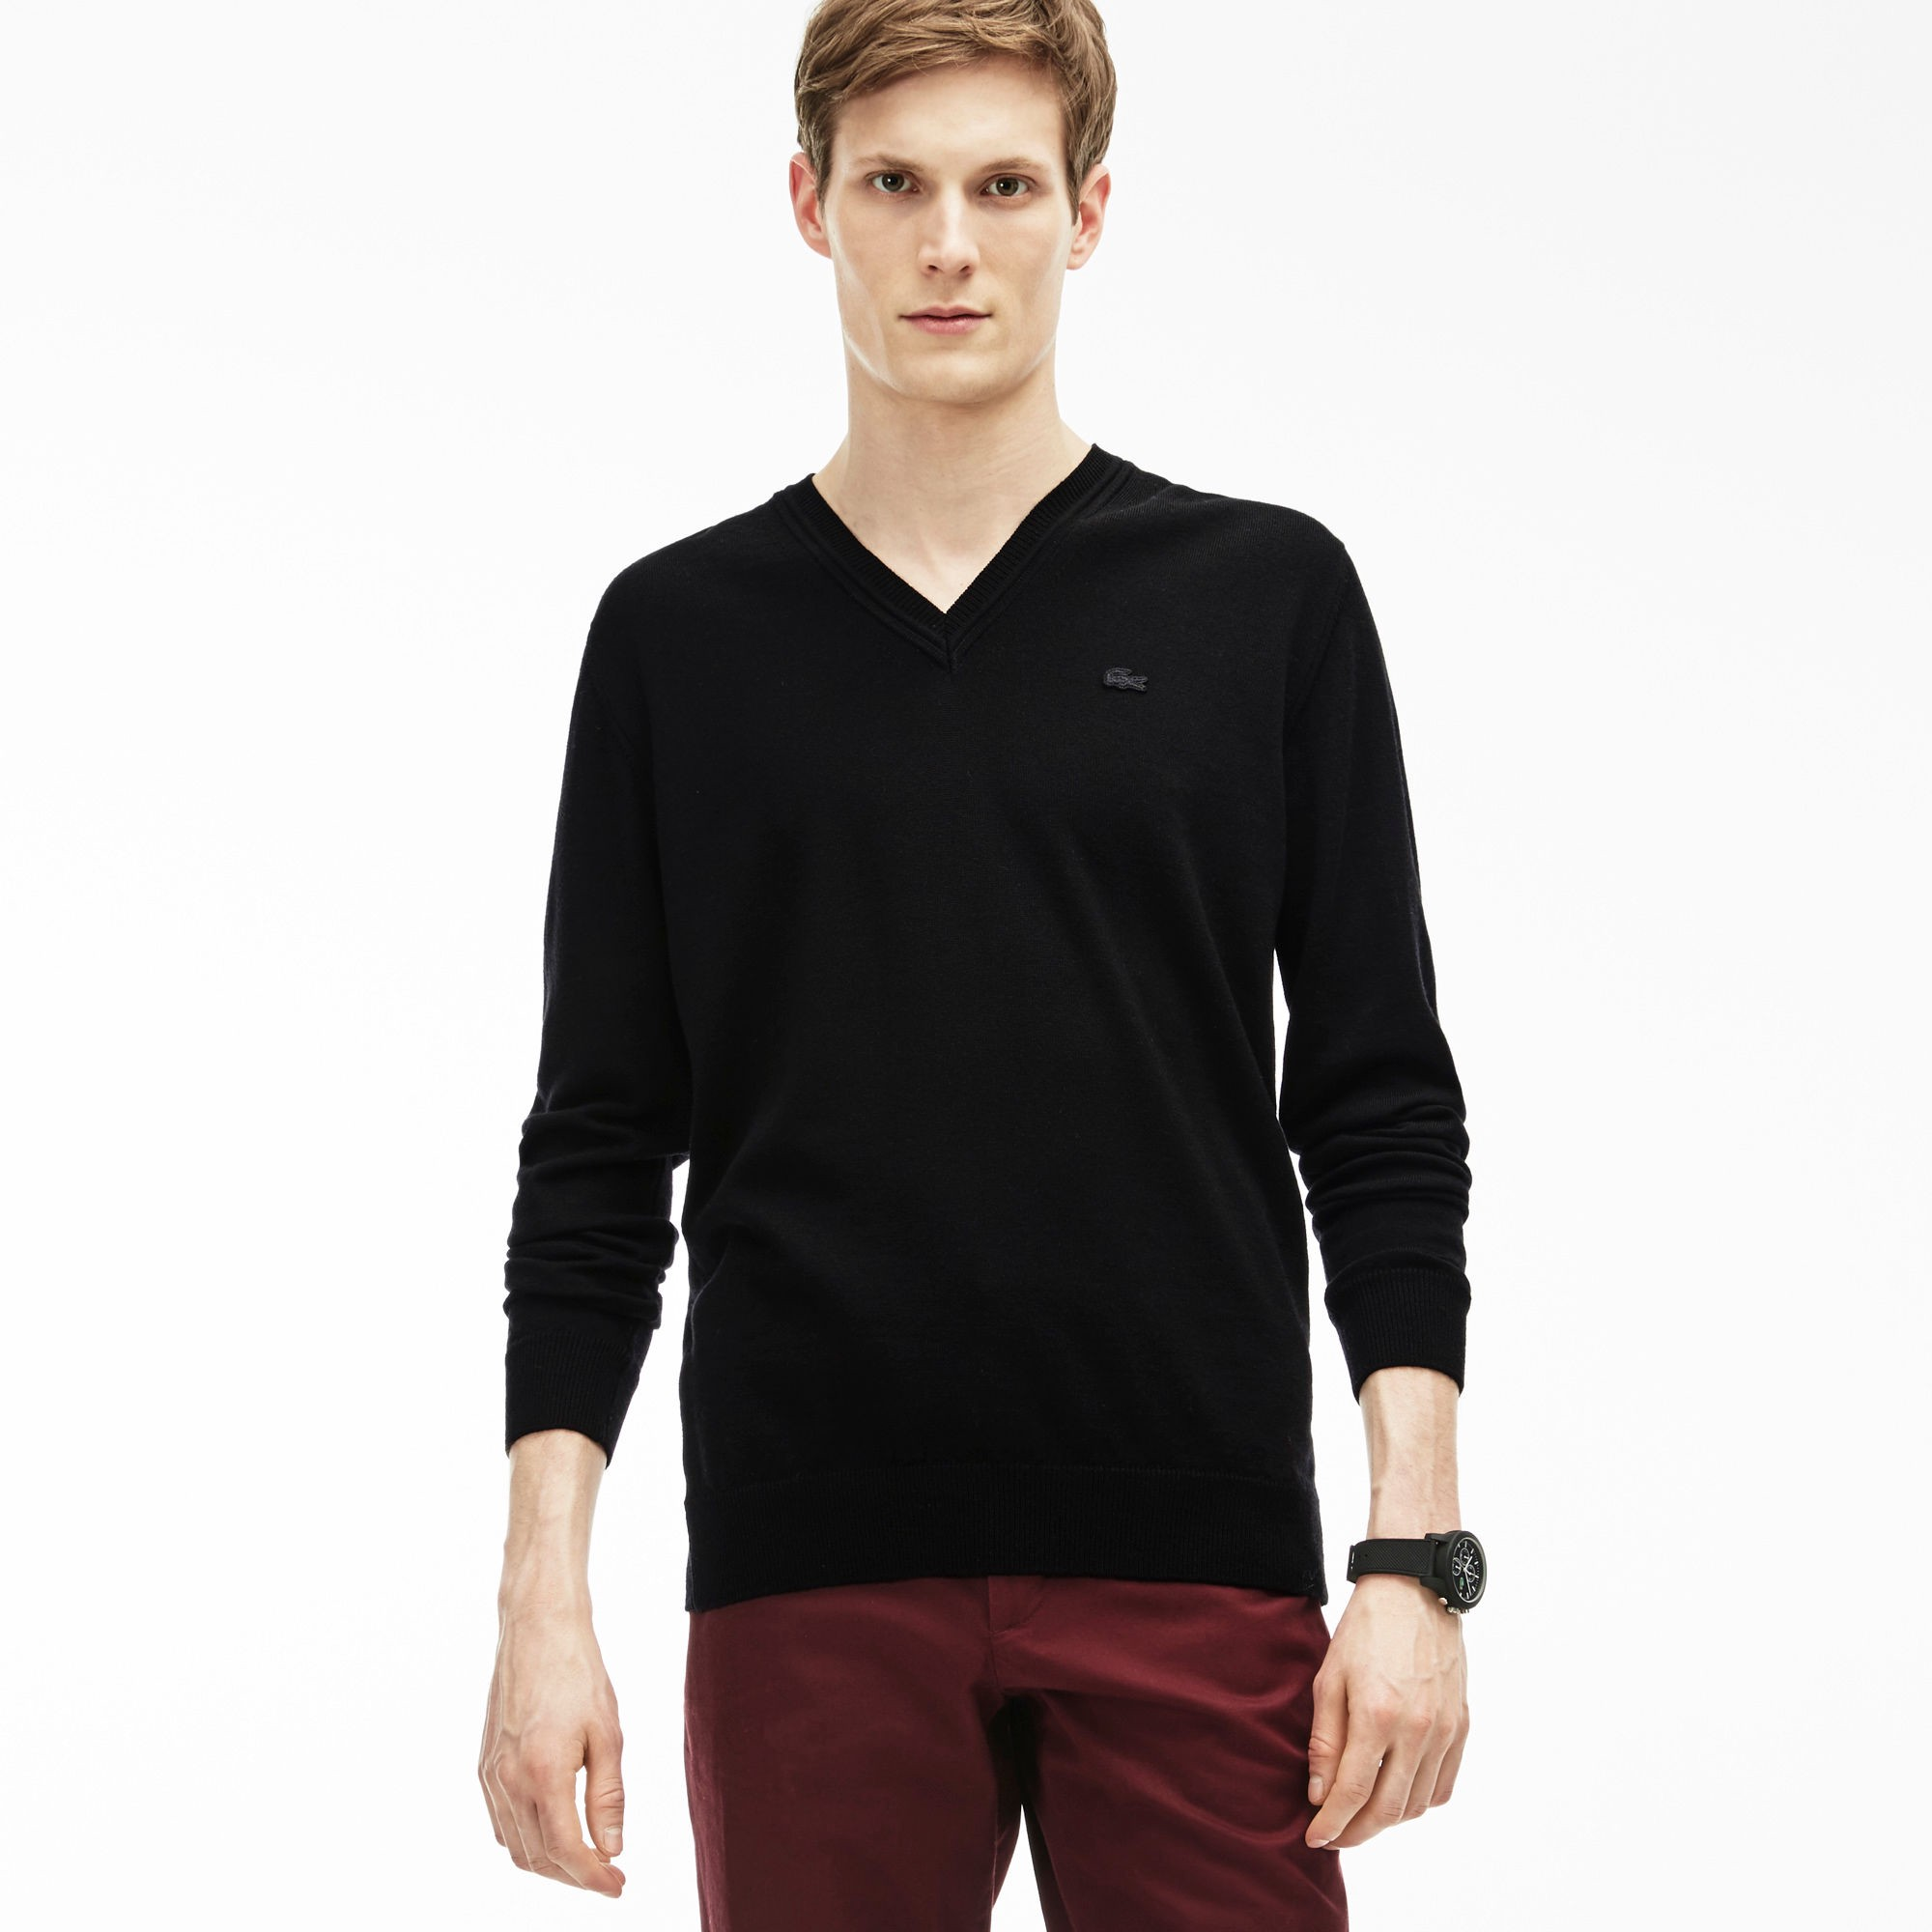 Lacoste Cotton Jersey V-neck Sweater In Black